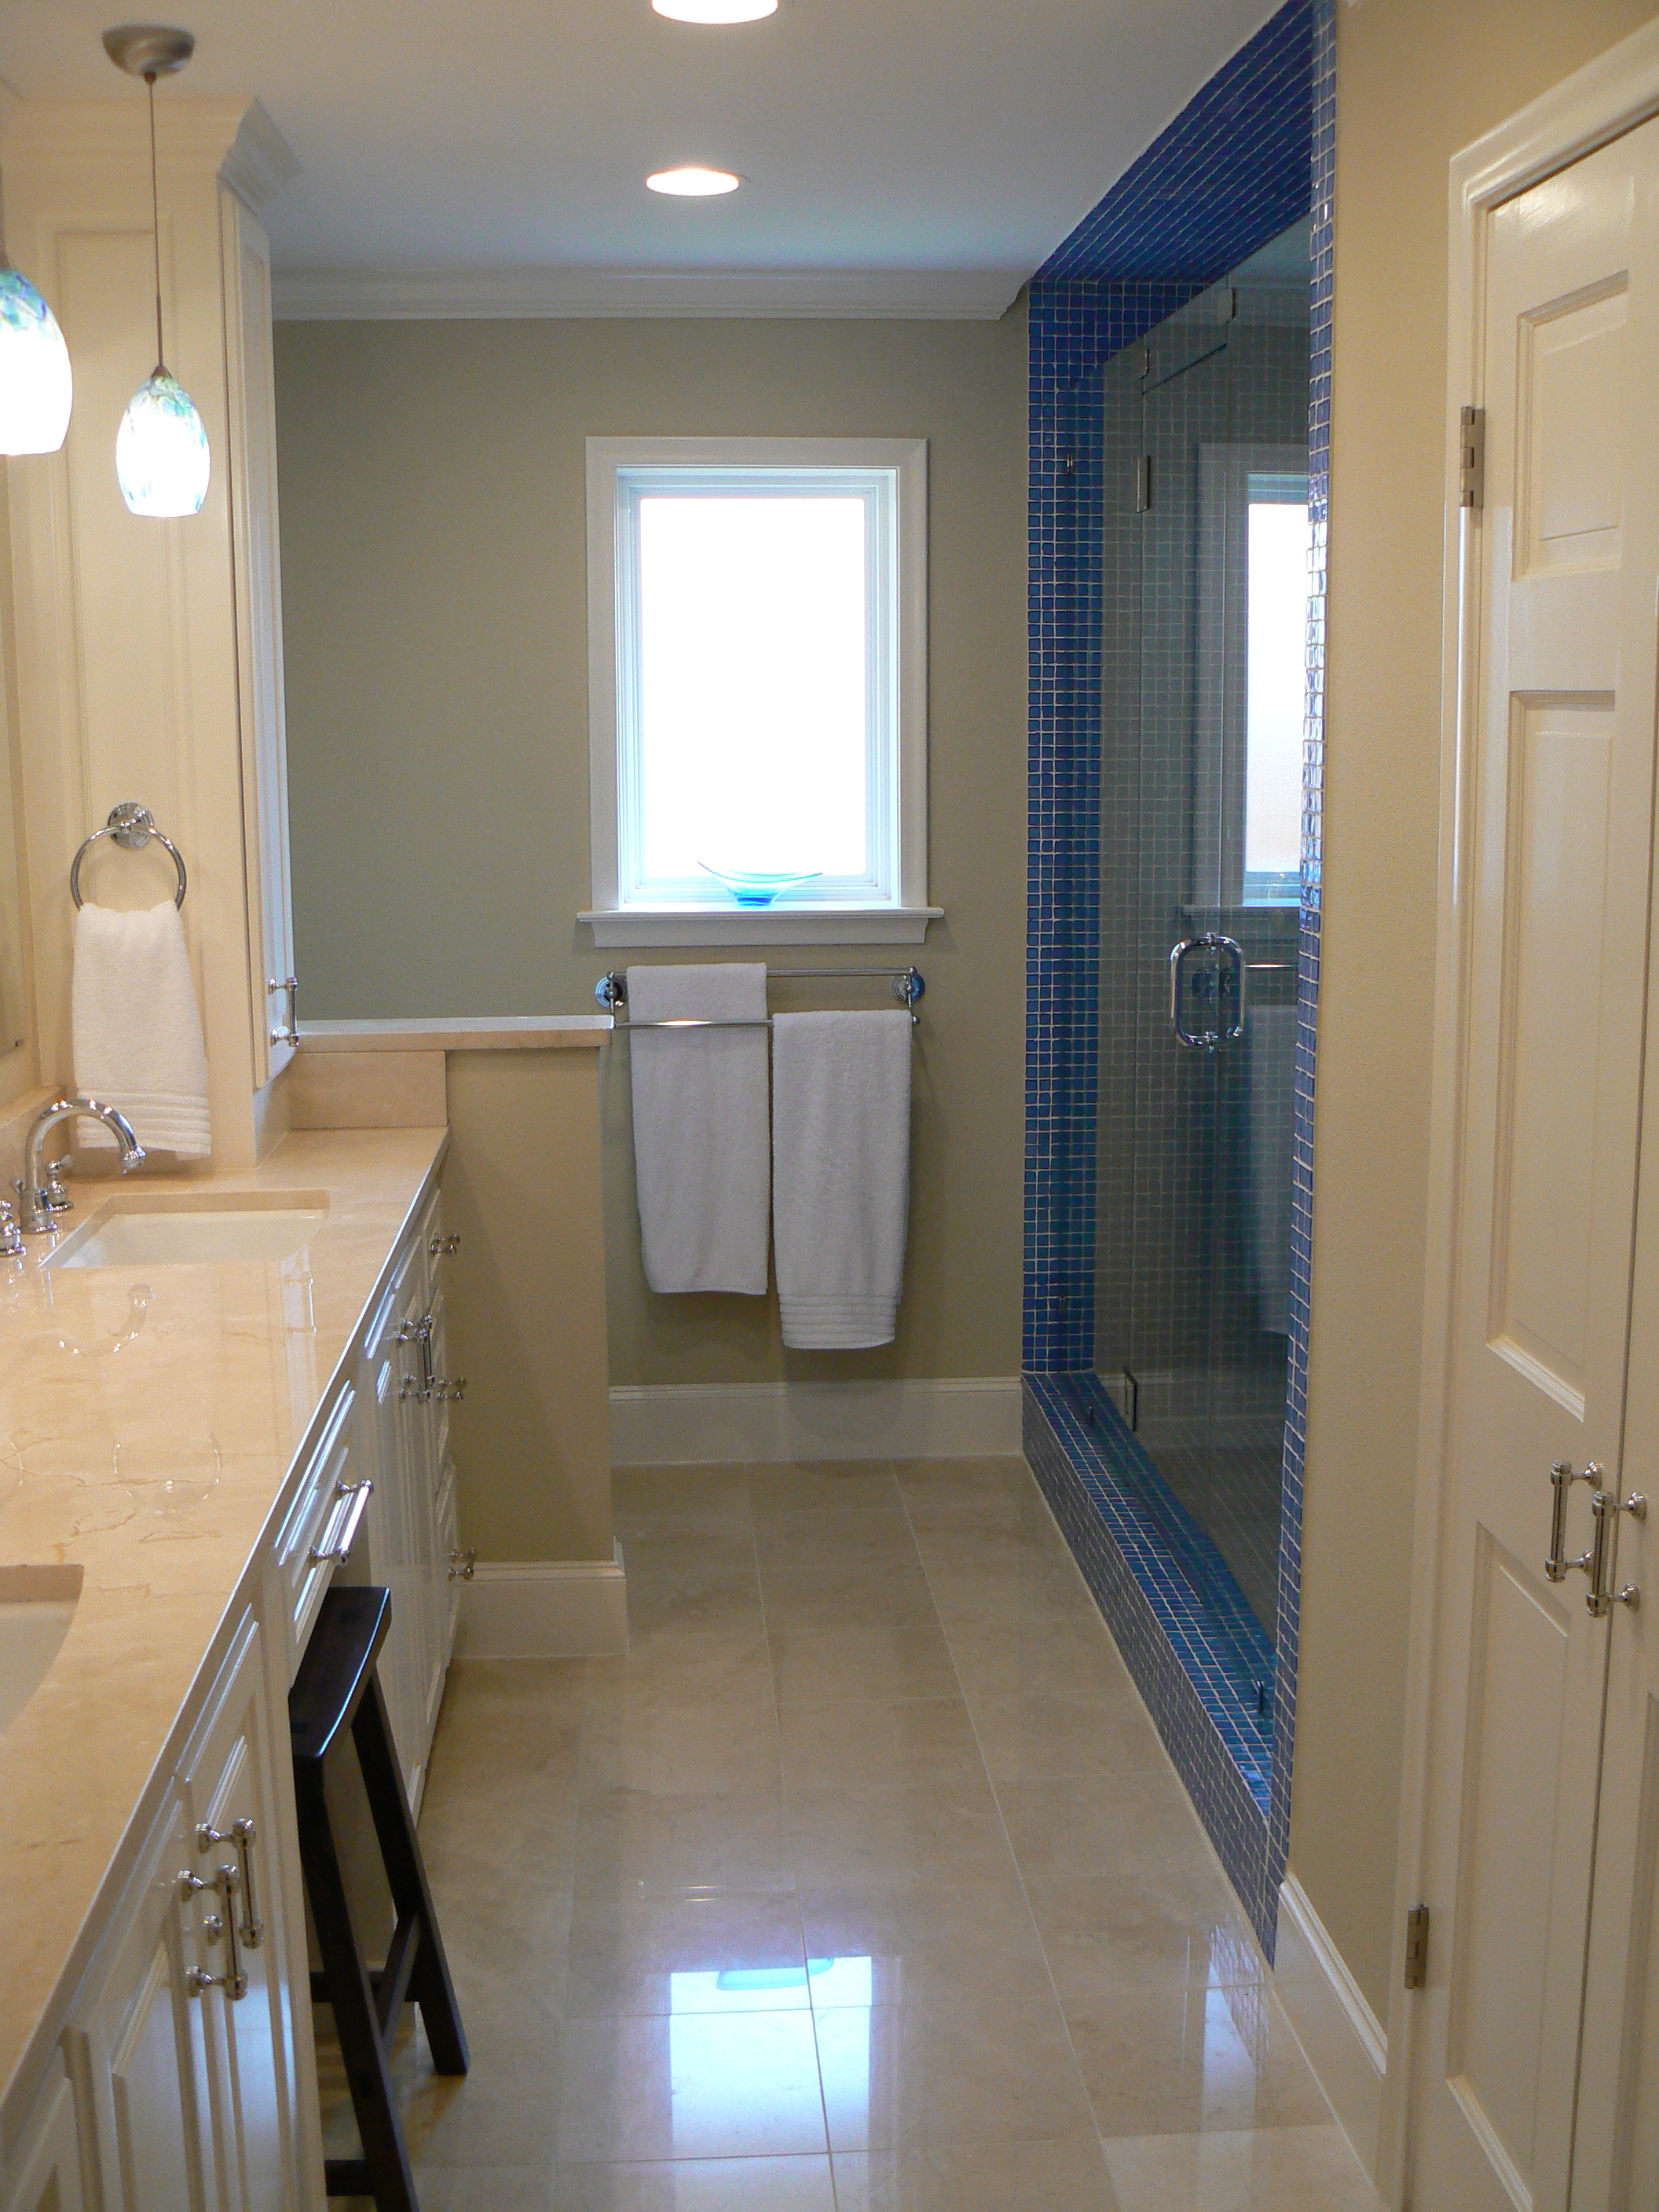 How To Remodel A Jack And Jill Bathroom : Home makeover before after photo gallery